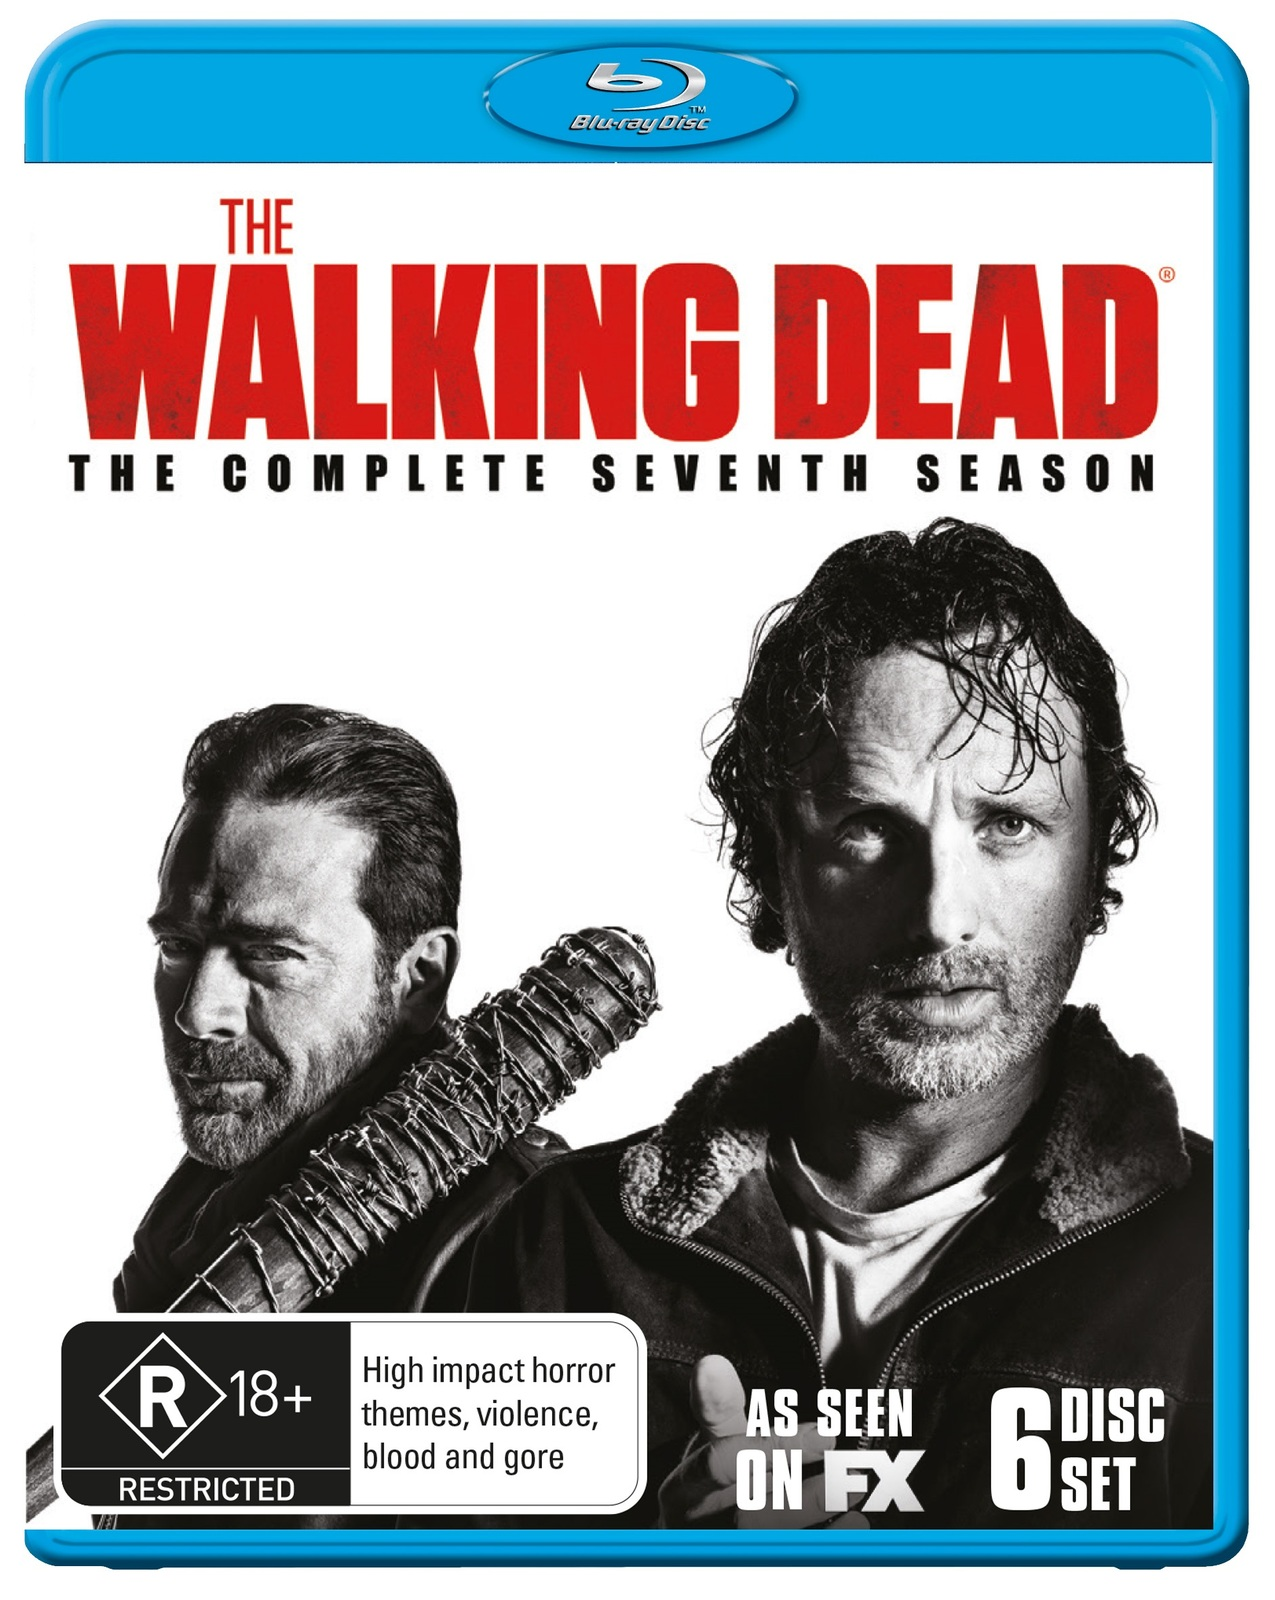 The Walking Dead - The Complete Seventh Season on Blu-ray image